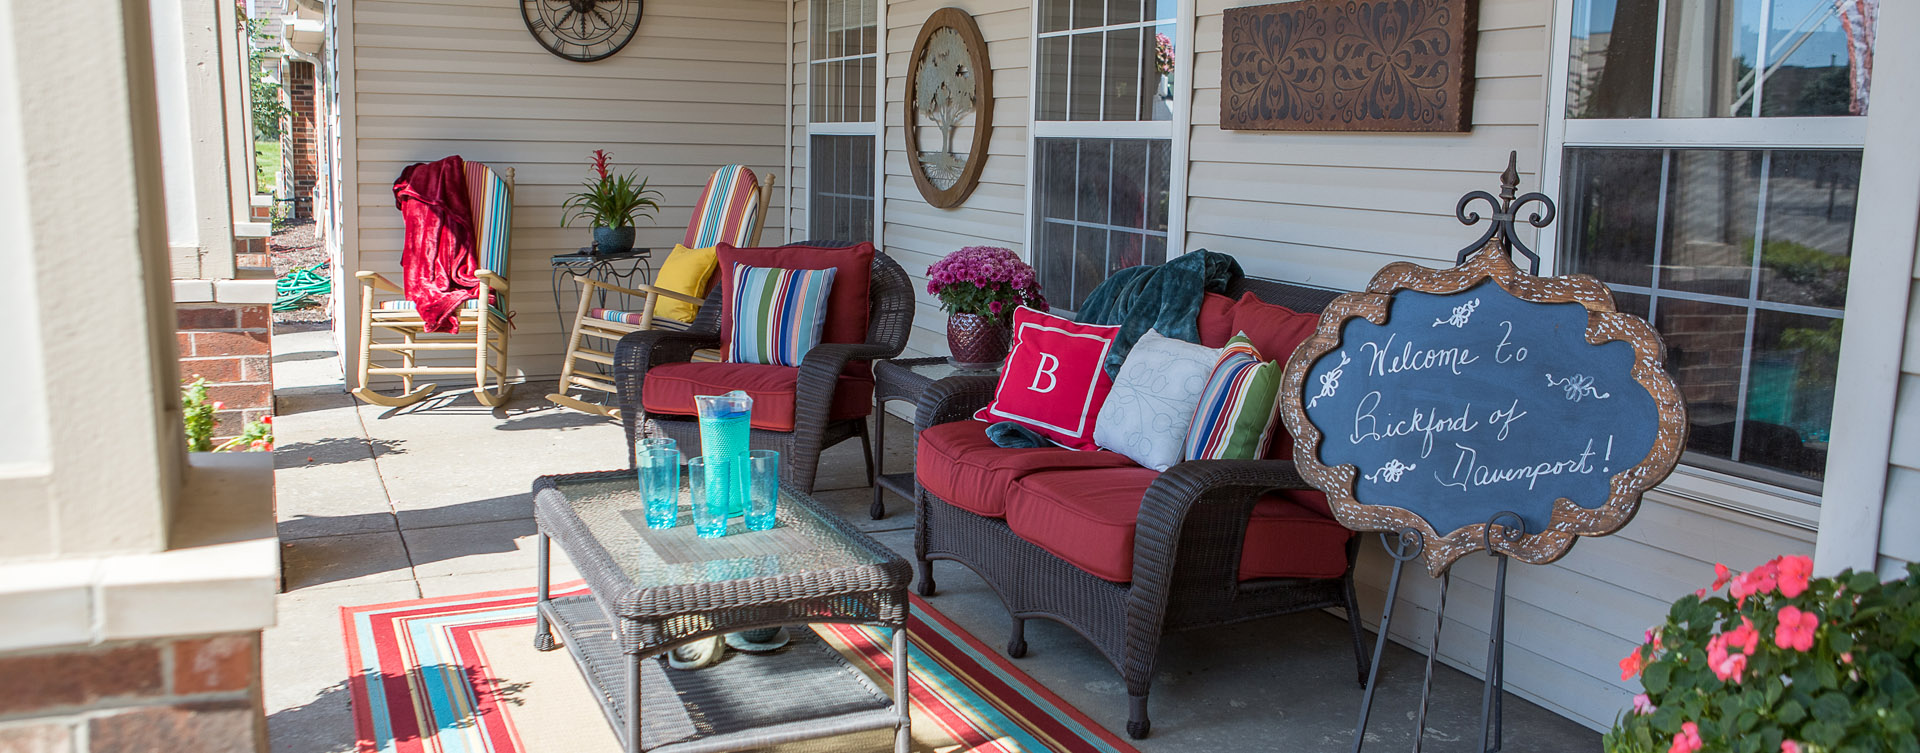 Enjoy conversations with friends on the porch at Bickford of Davenport